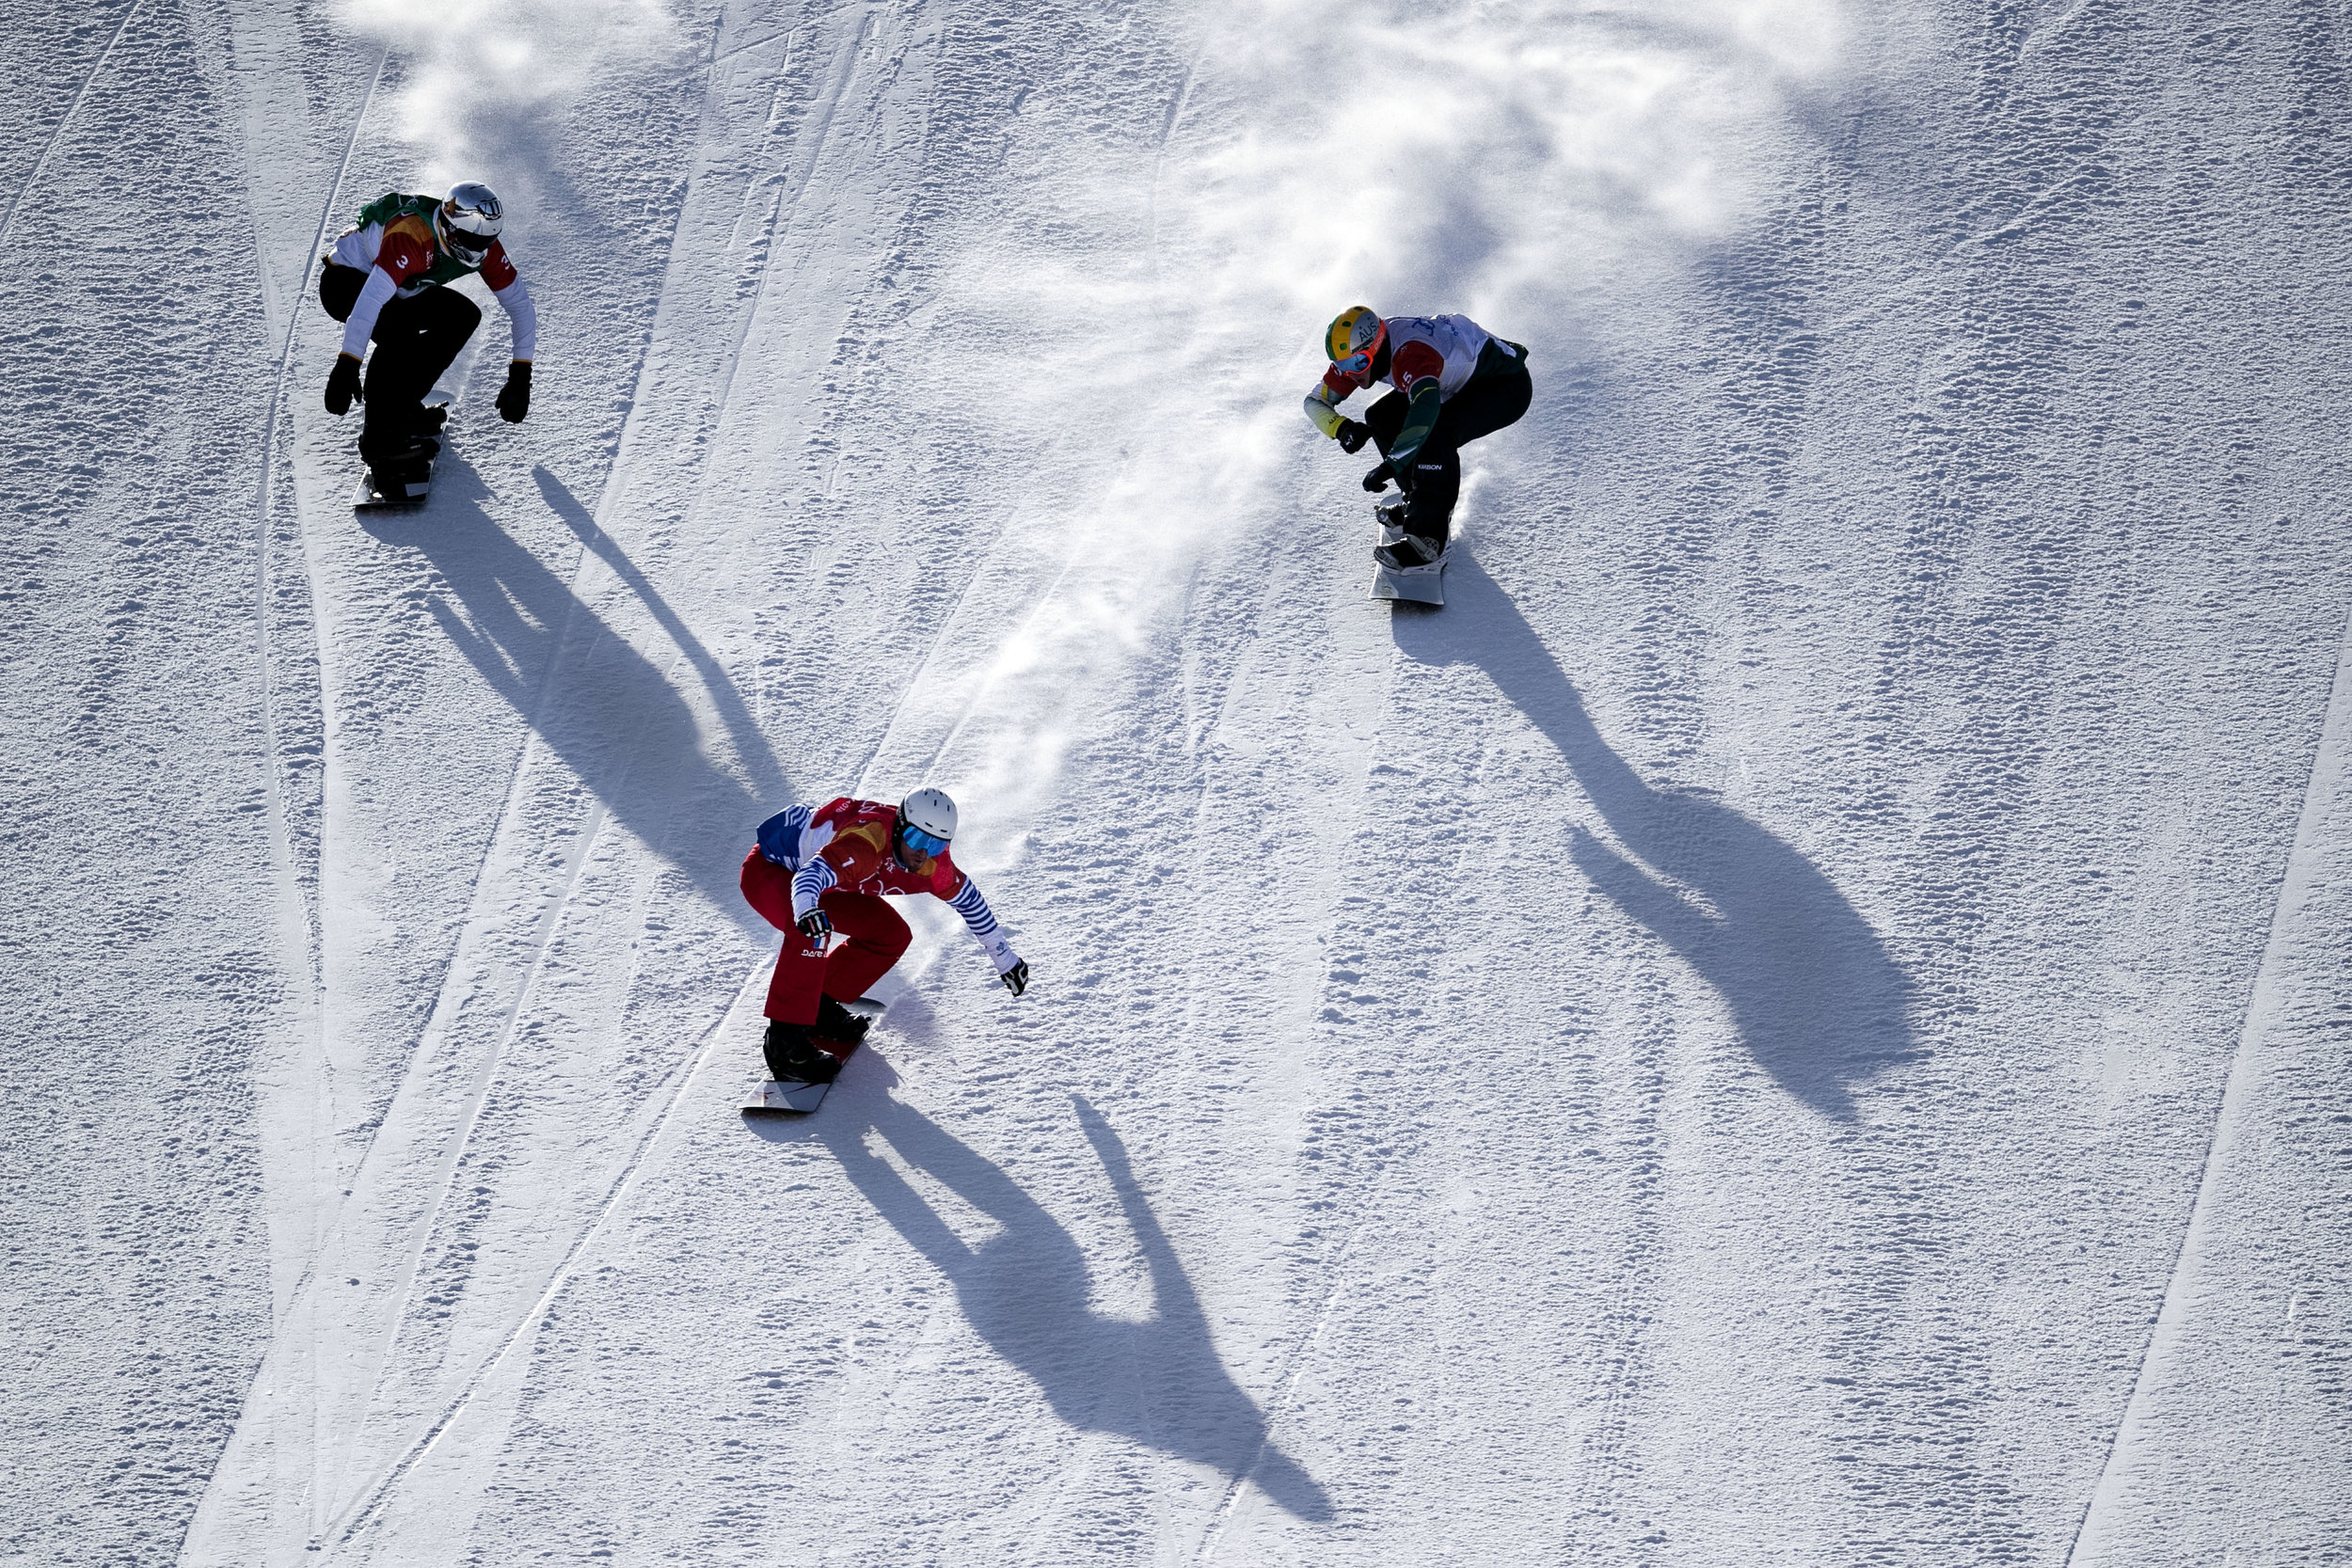 Athlete's gathered to compete in motocross like mash up of six snowboarders and a mix of obstacle courses, the Olympic event Snowboard Cross, Feb. 15, at Phoenix Snow Park.